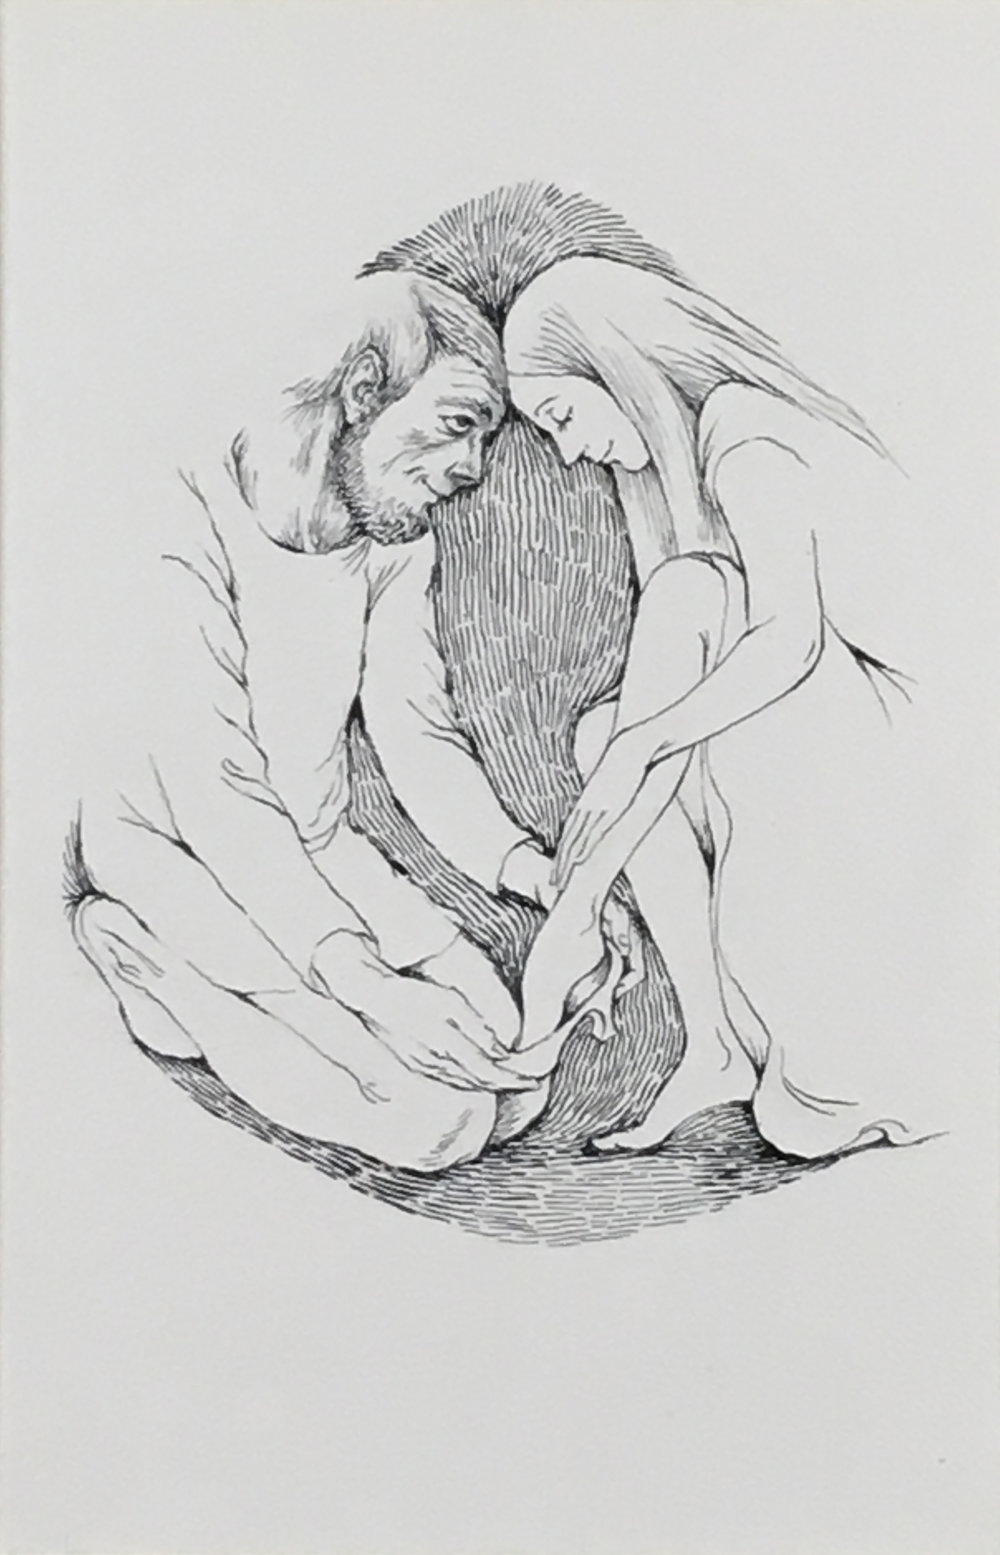 Cinderella,  1970-71 nk on paper, 16 x 1 1/8 inches